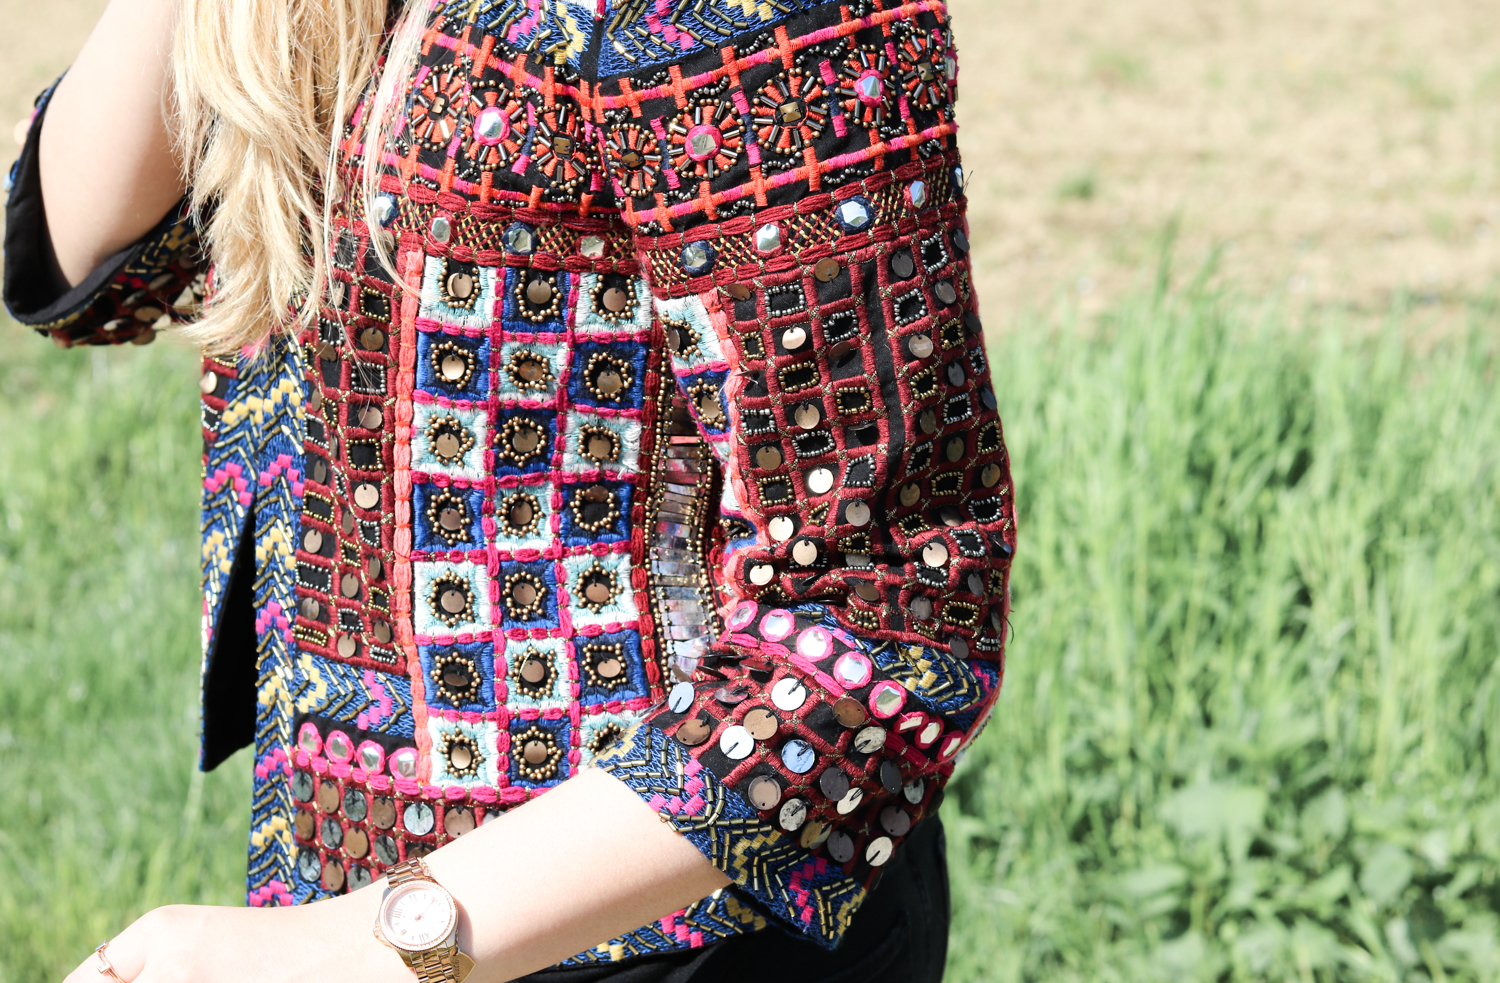 Bits and Bobs by Eva, Blog, Austrian Blog, Österreichische Blog, lovedailydose, your daily treat, fashion, beauty, food, interior, fitness, new, bitsandbobsbyeva.com, travel, spring, April, Frühling, Folklore Jacke, Hippie, Festival Look, Outfit of the Day, Folklore Outfit